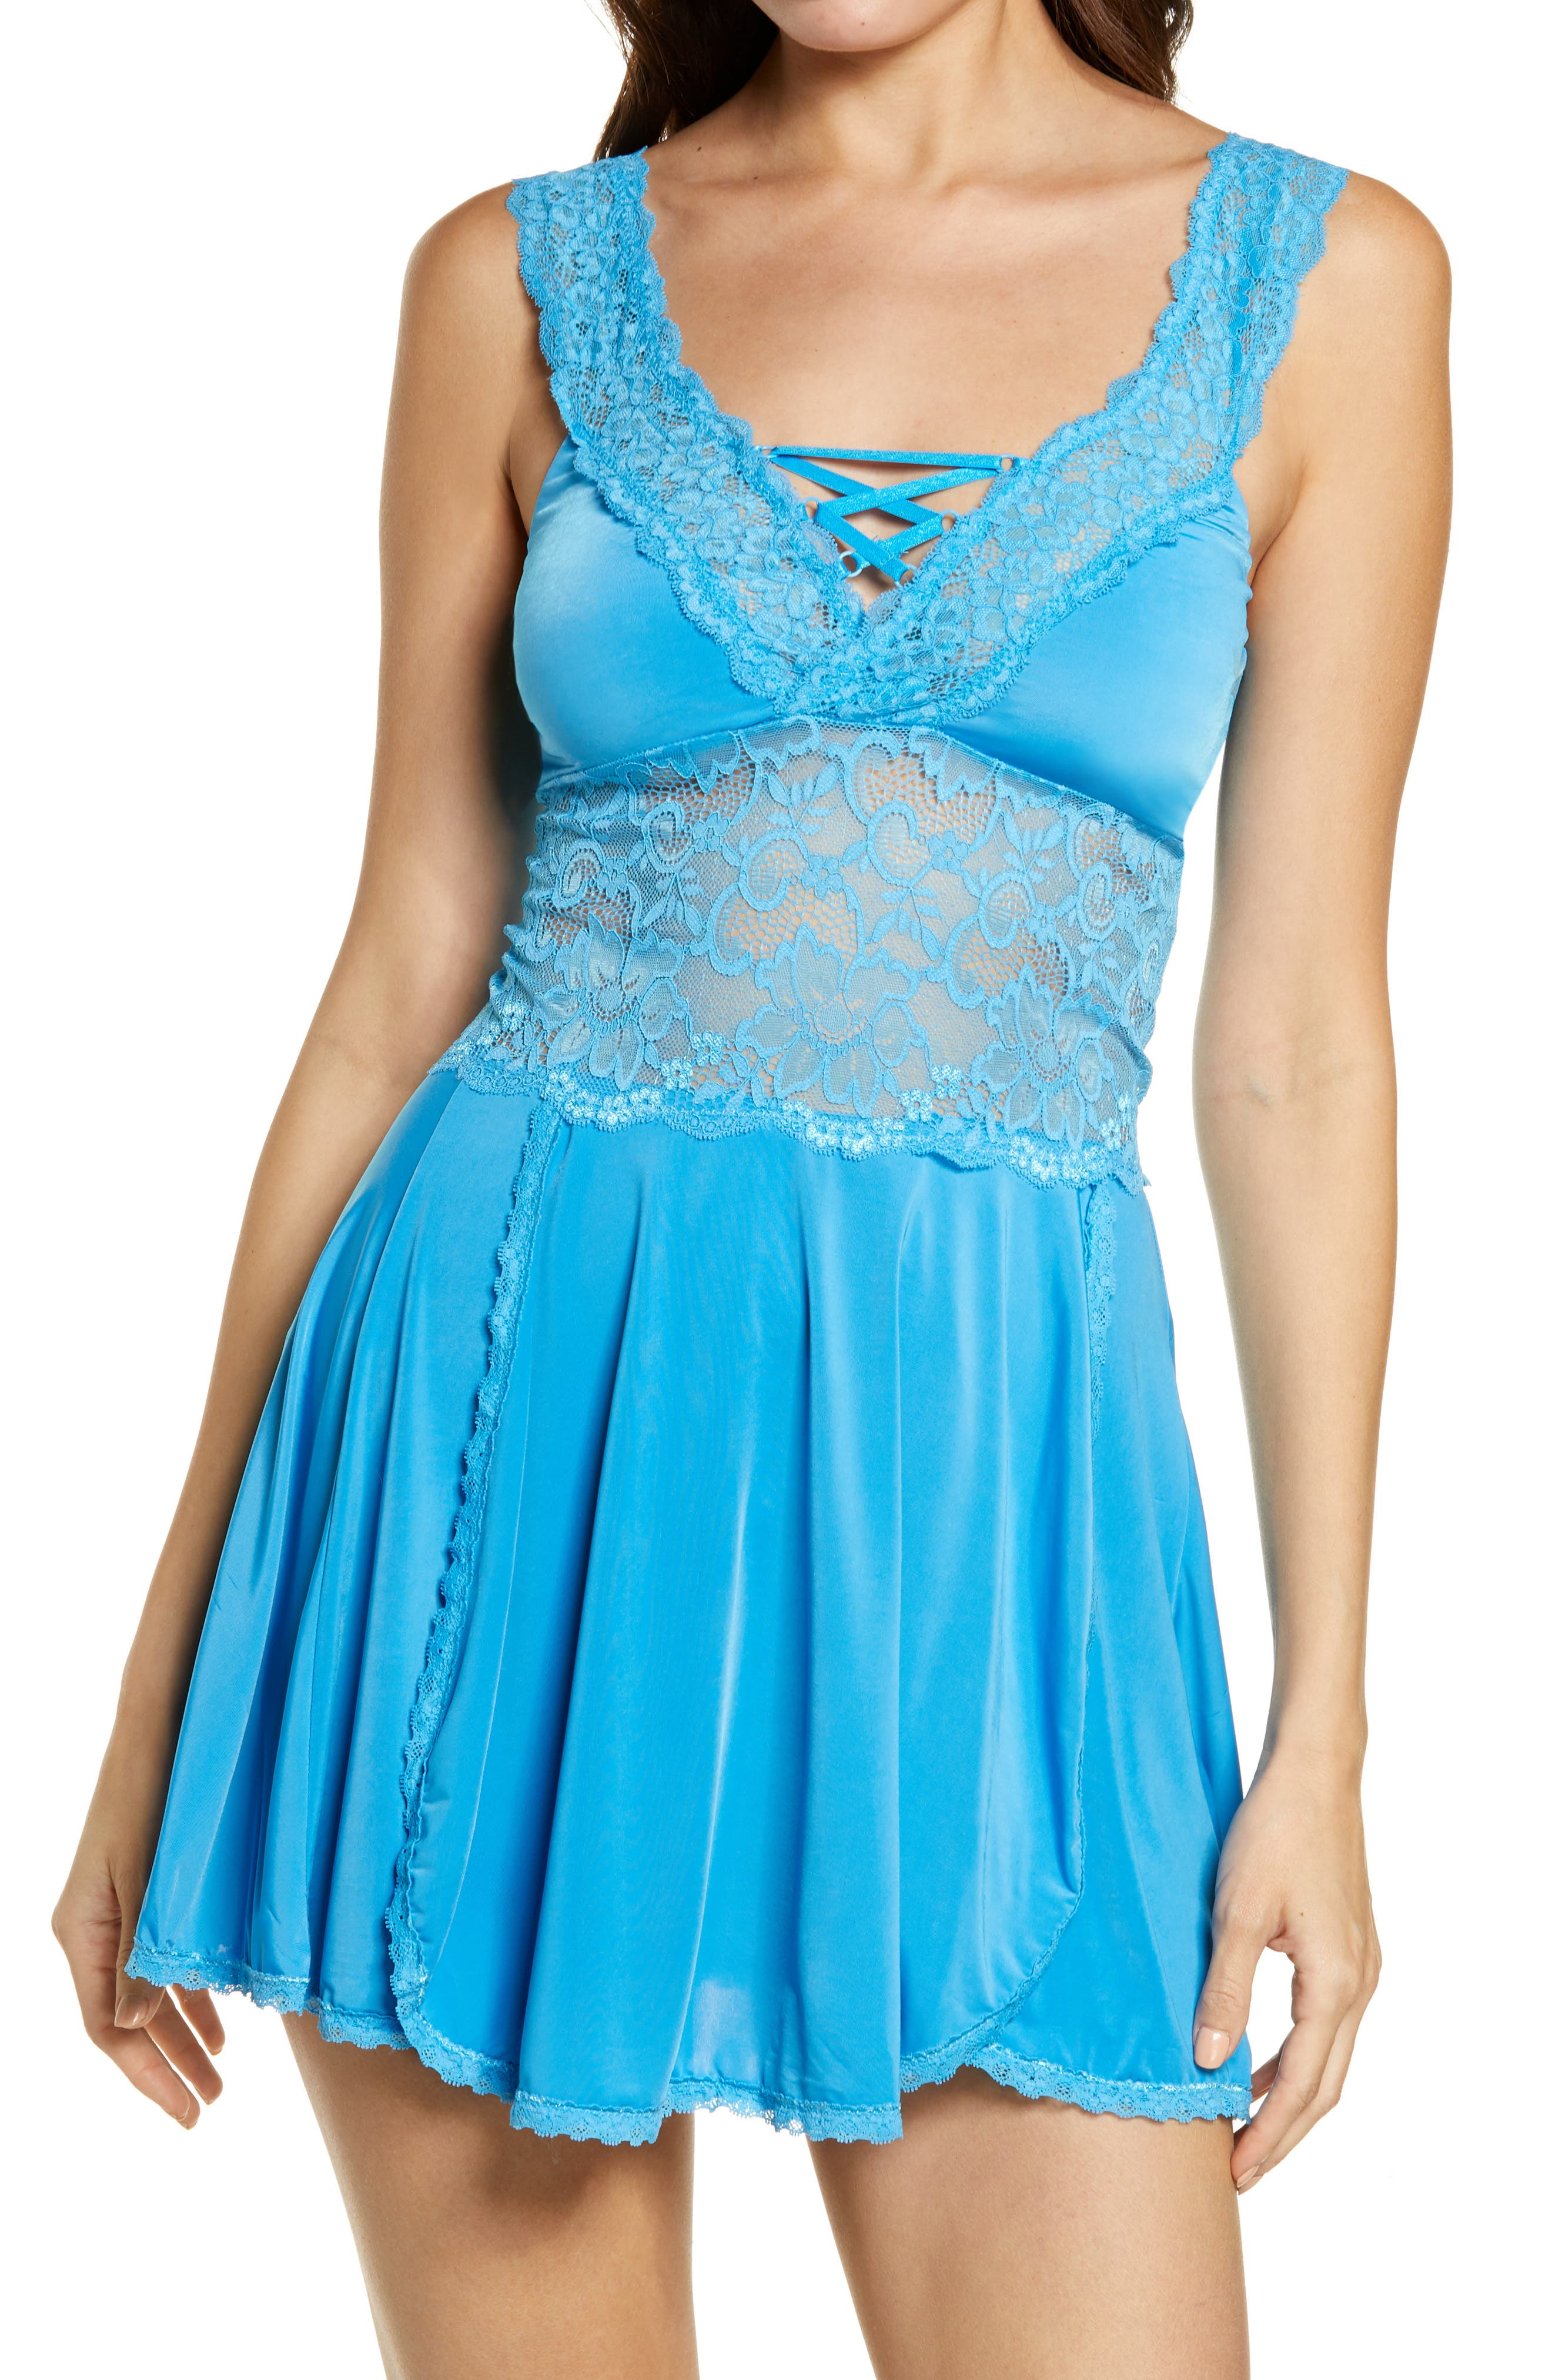 Lace Detail Babydoll Chemise & Thong